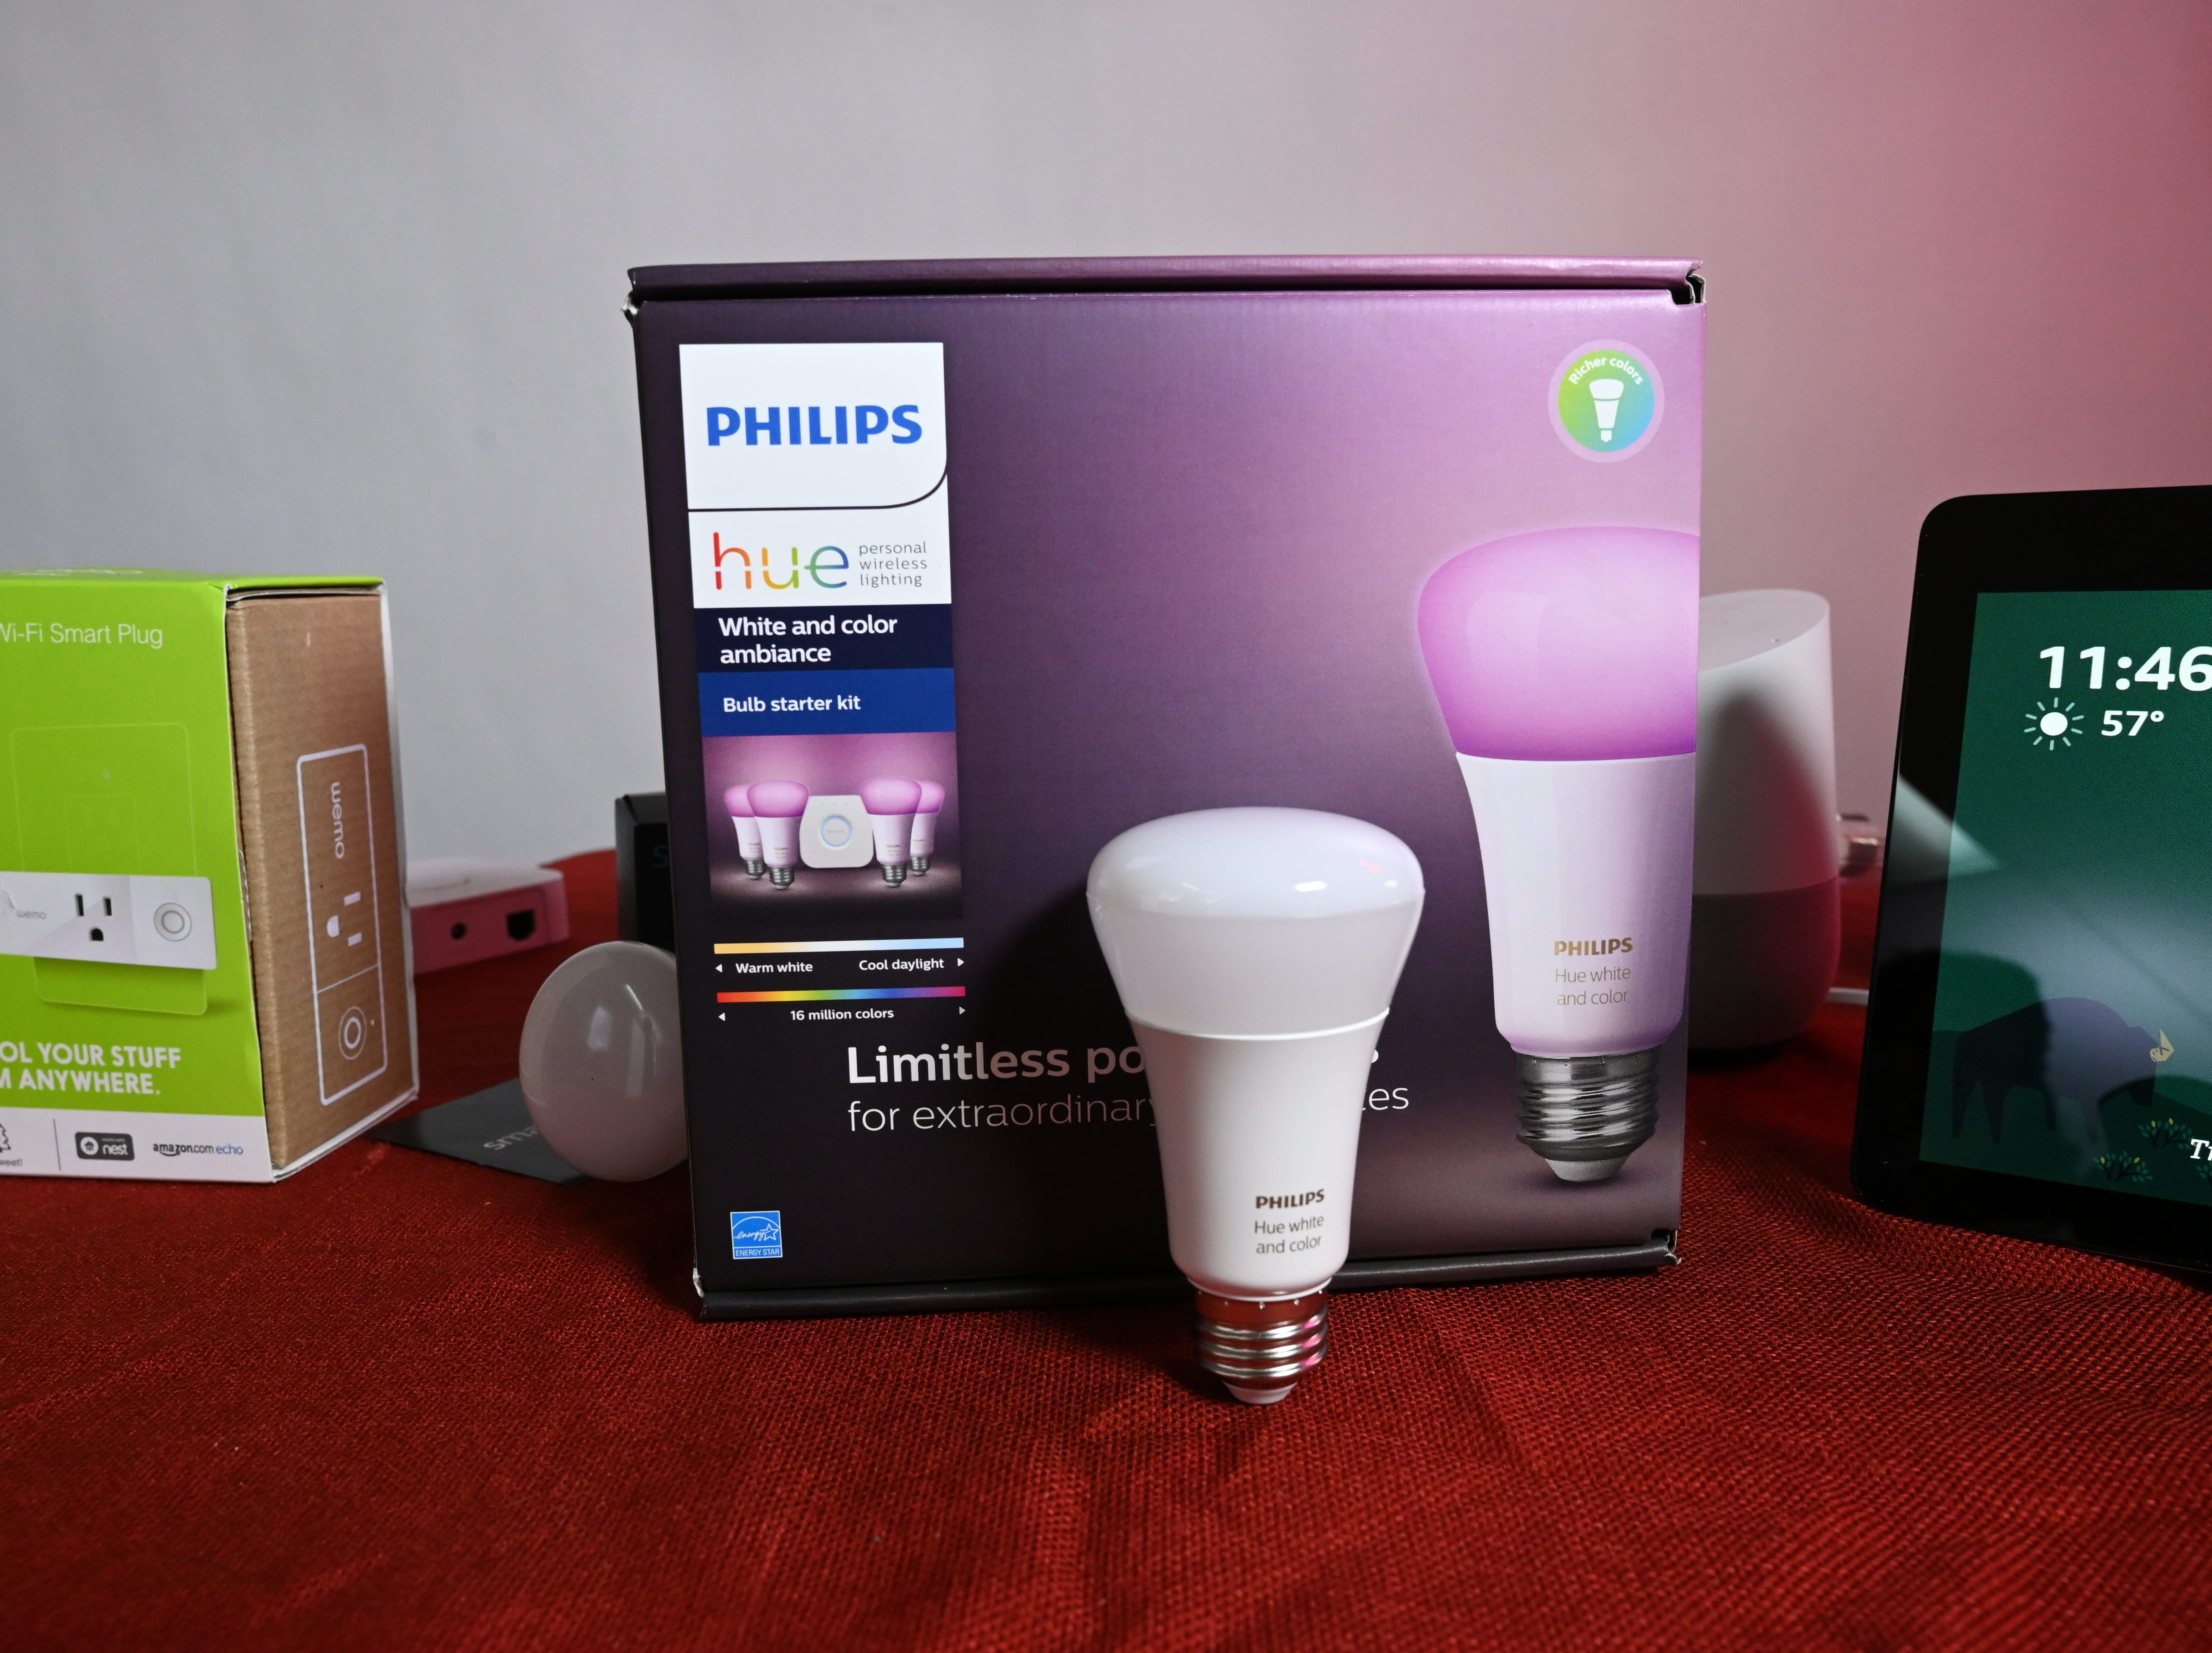 A Philips Hue light.